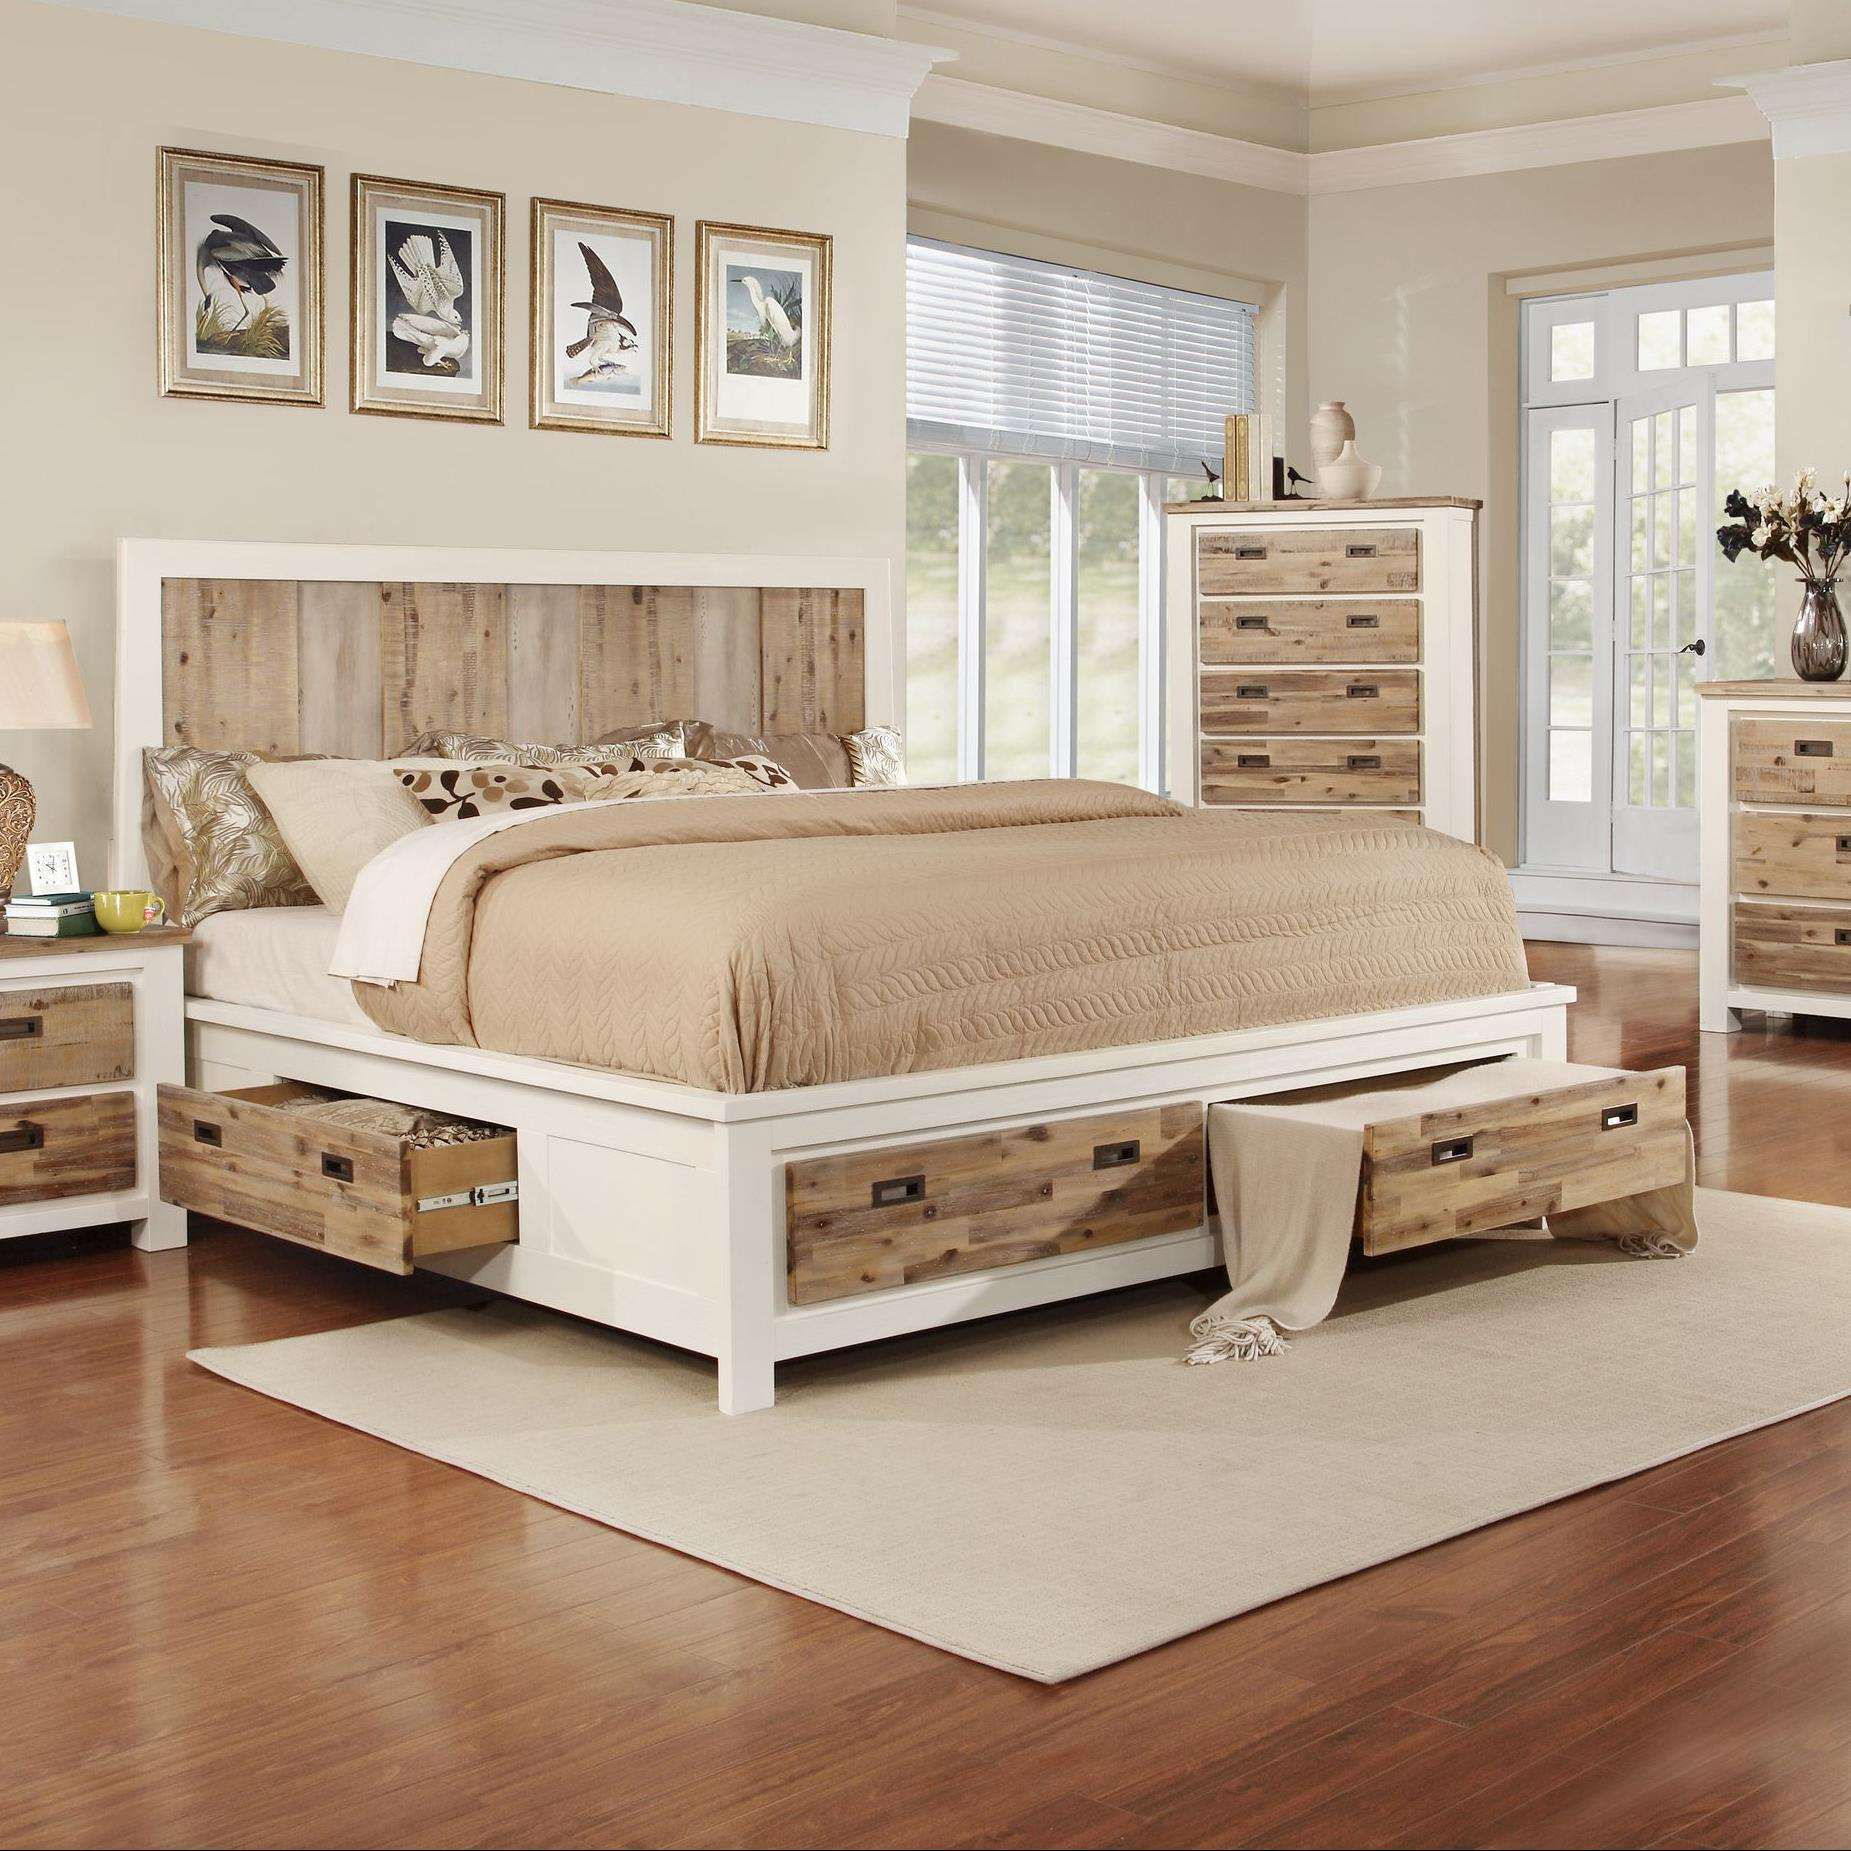 Lifestyle Tommy King Storage Bed - Item Number: C3470A-KX2+GTC+BTN+GXS